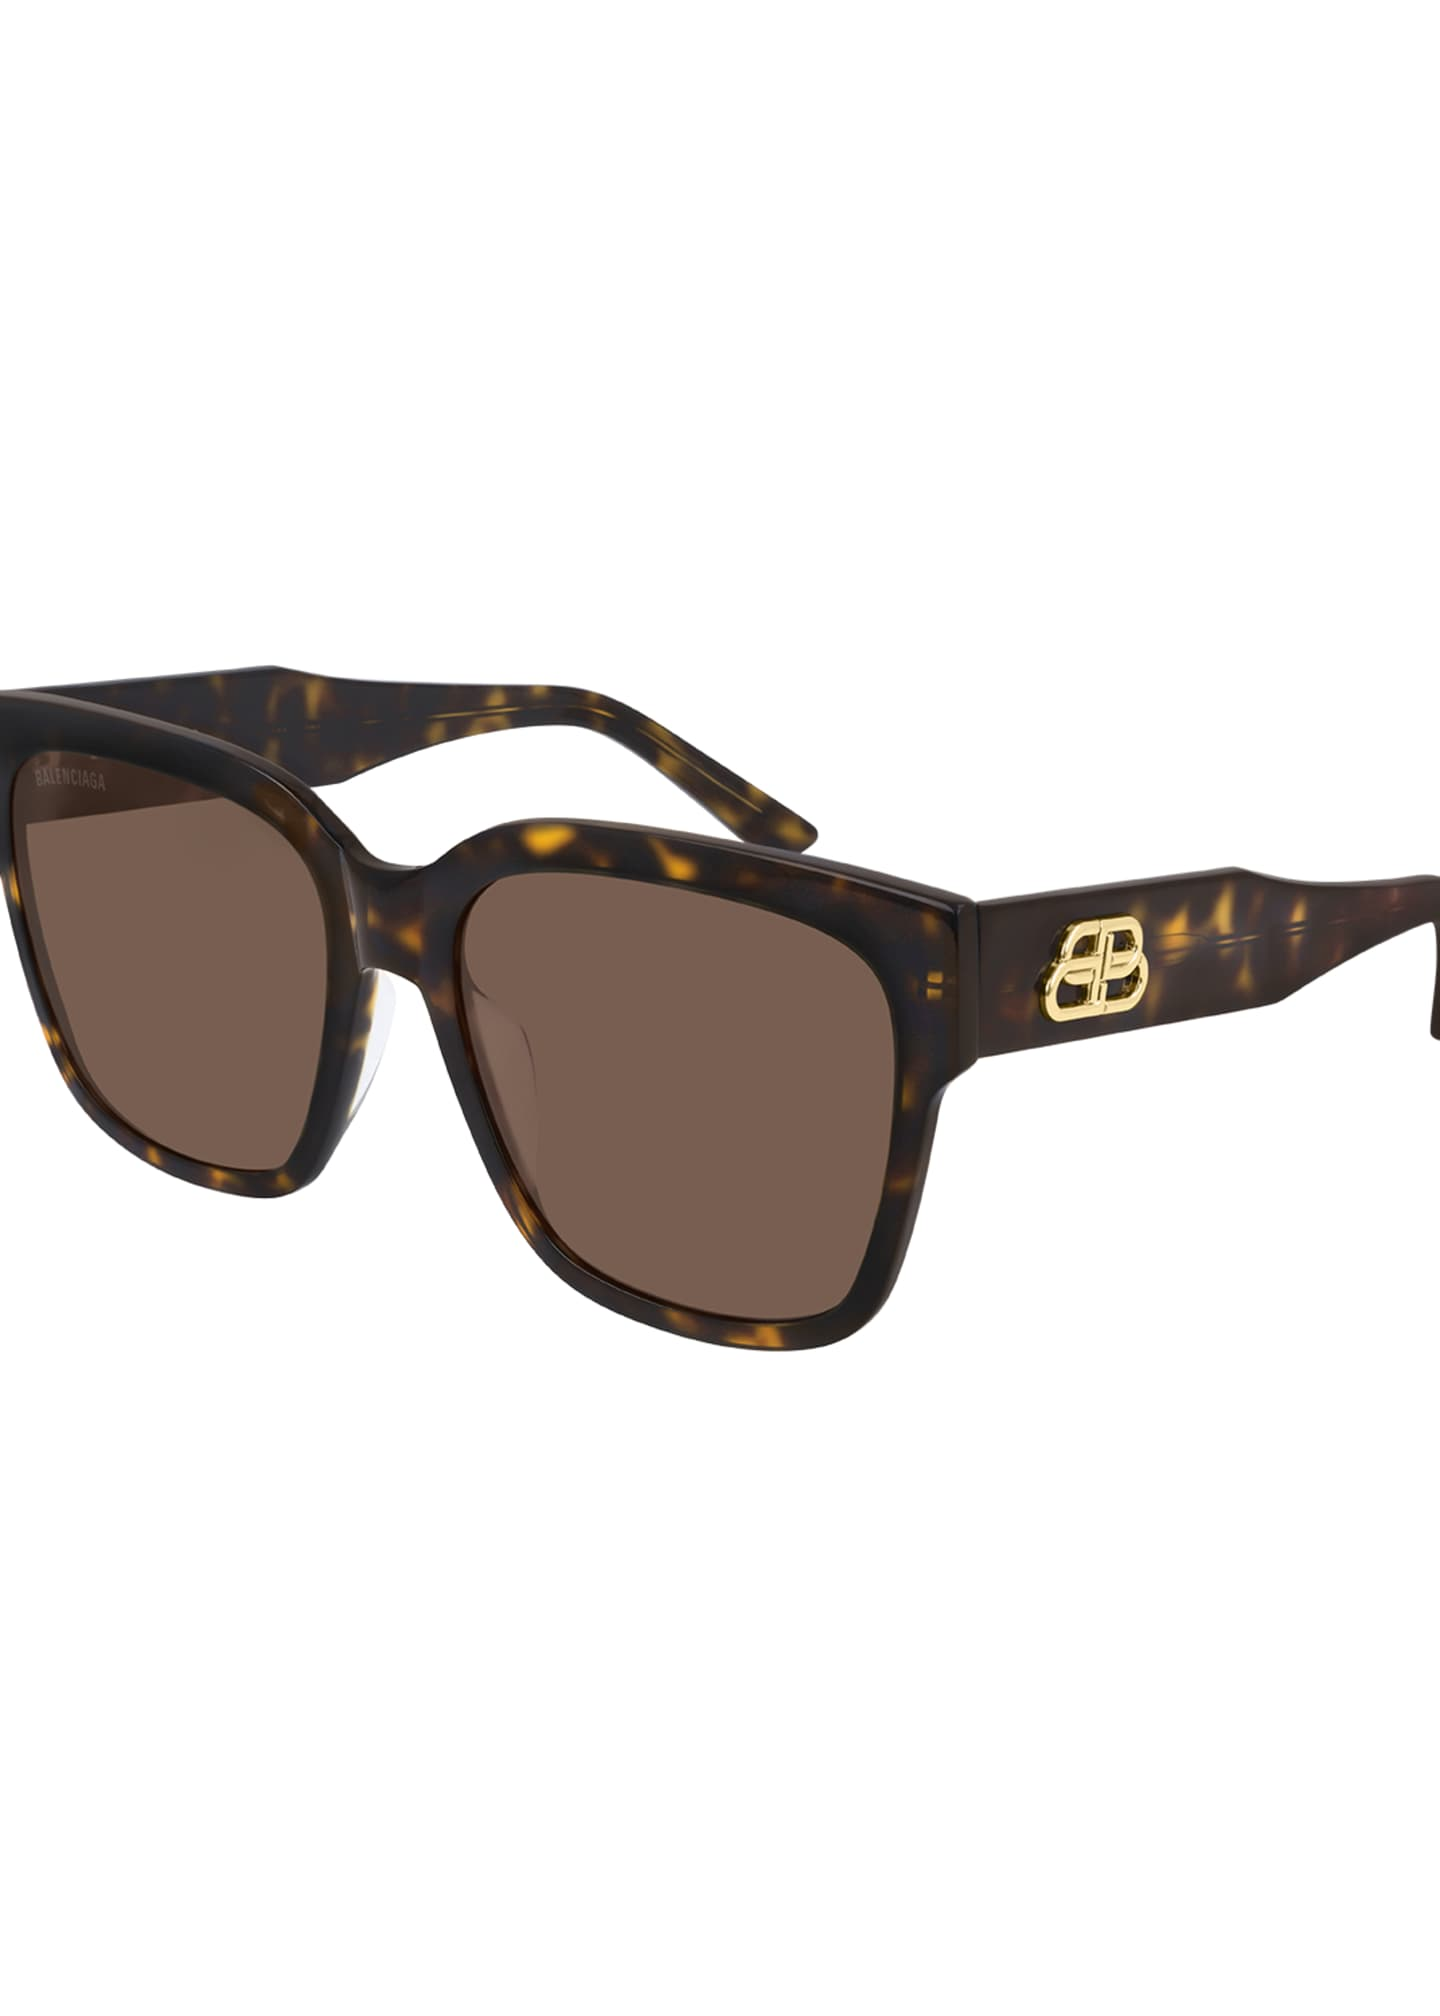 Balenciaga Square Acetate Sunglasses with BB Temple